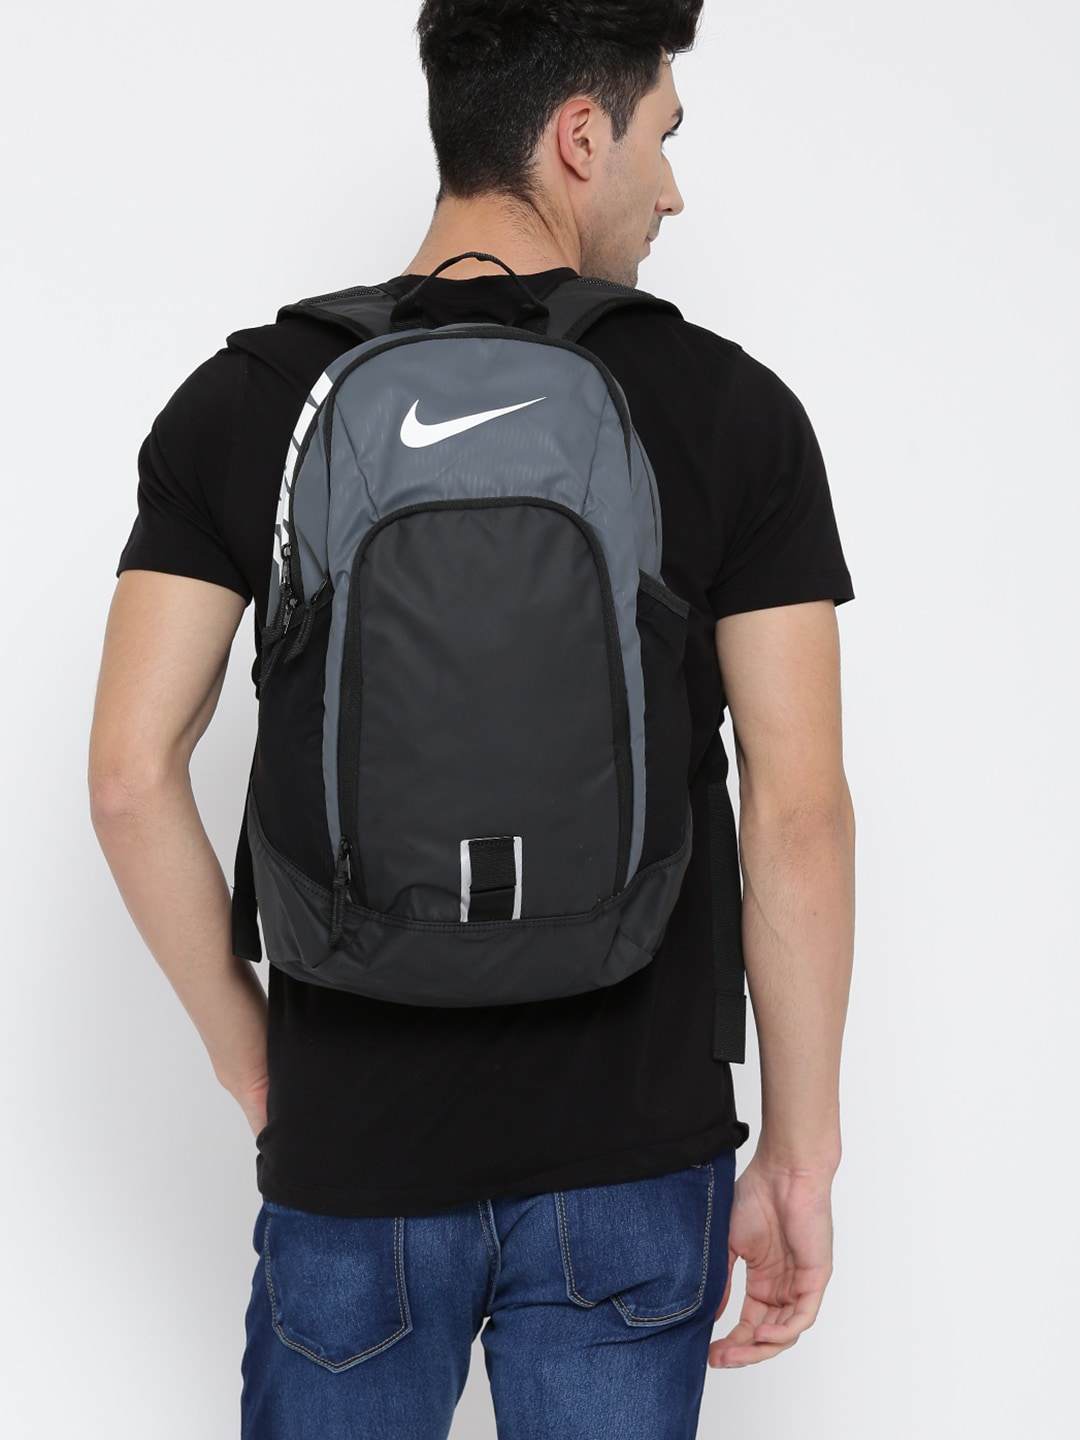 9d61fb6981 Nike Backpacks Headband S - Buy Nike Backpacks Headband S online in India